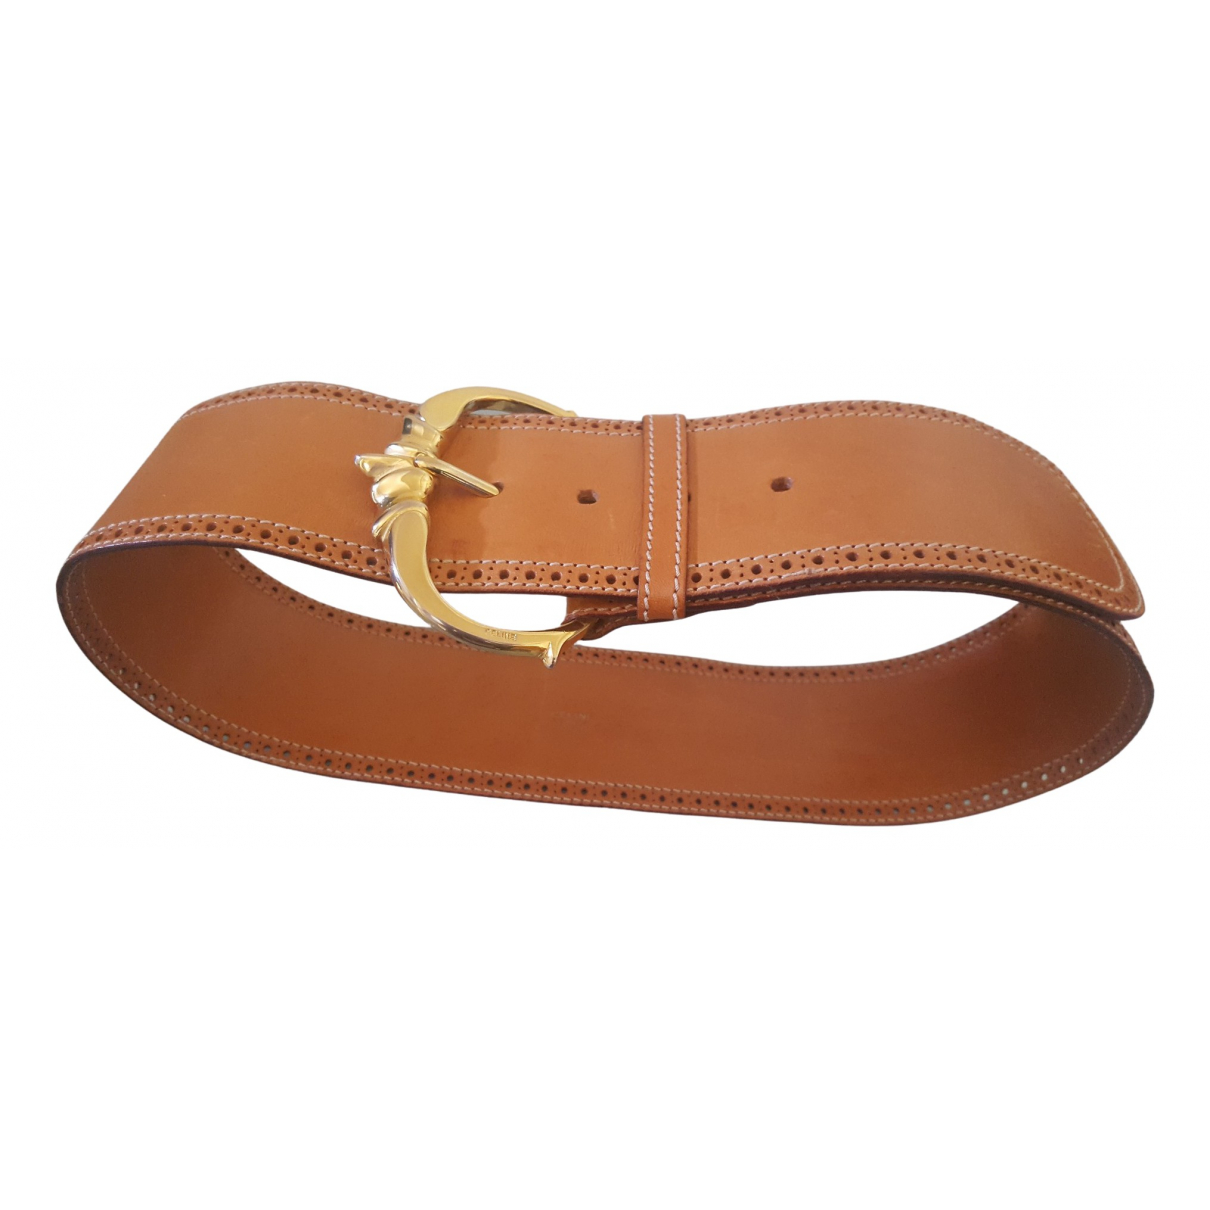 Celine \N Camel Leather belt for Women S International